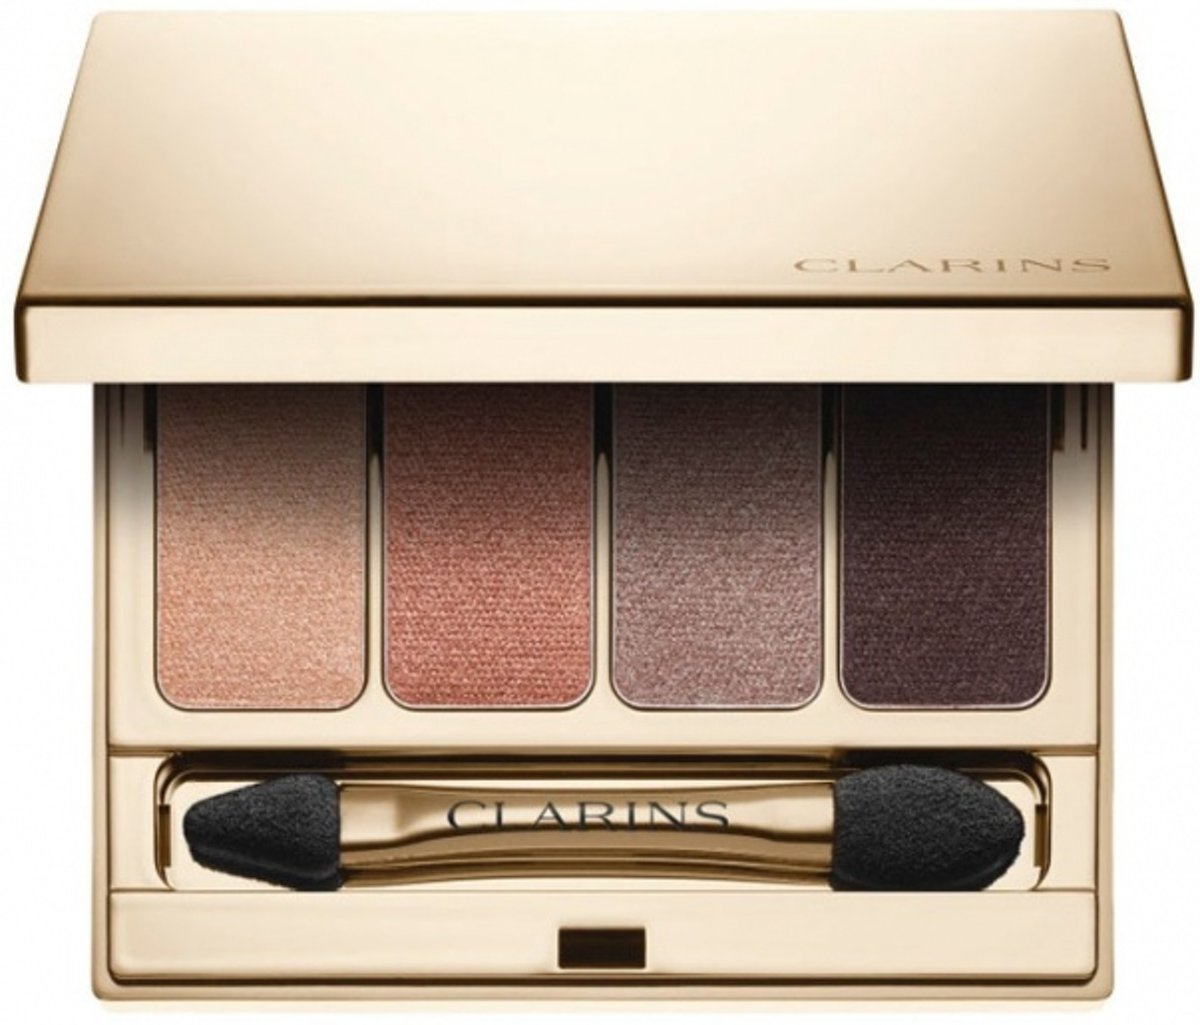 Clarins Palette 4 Couleurs Oogschaduwpalette 6.9 gr. - 01 - Nude